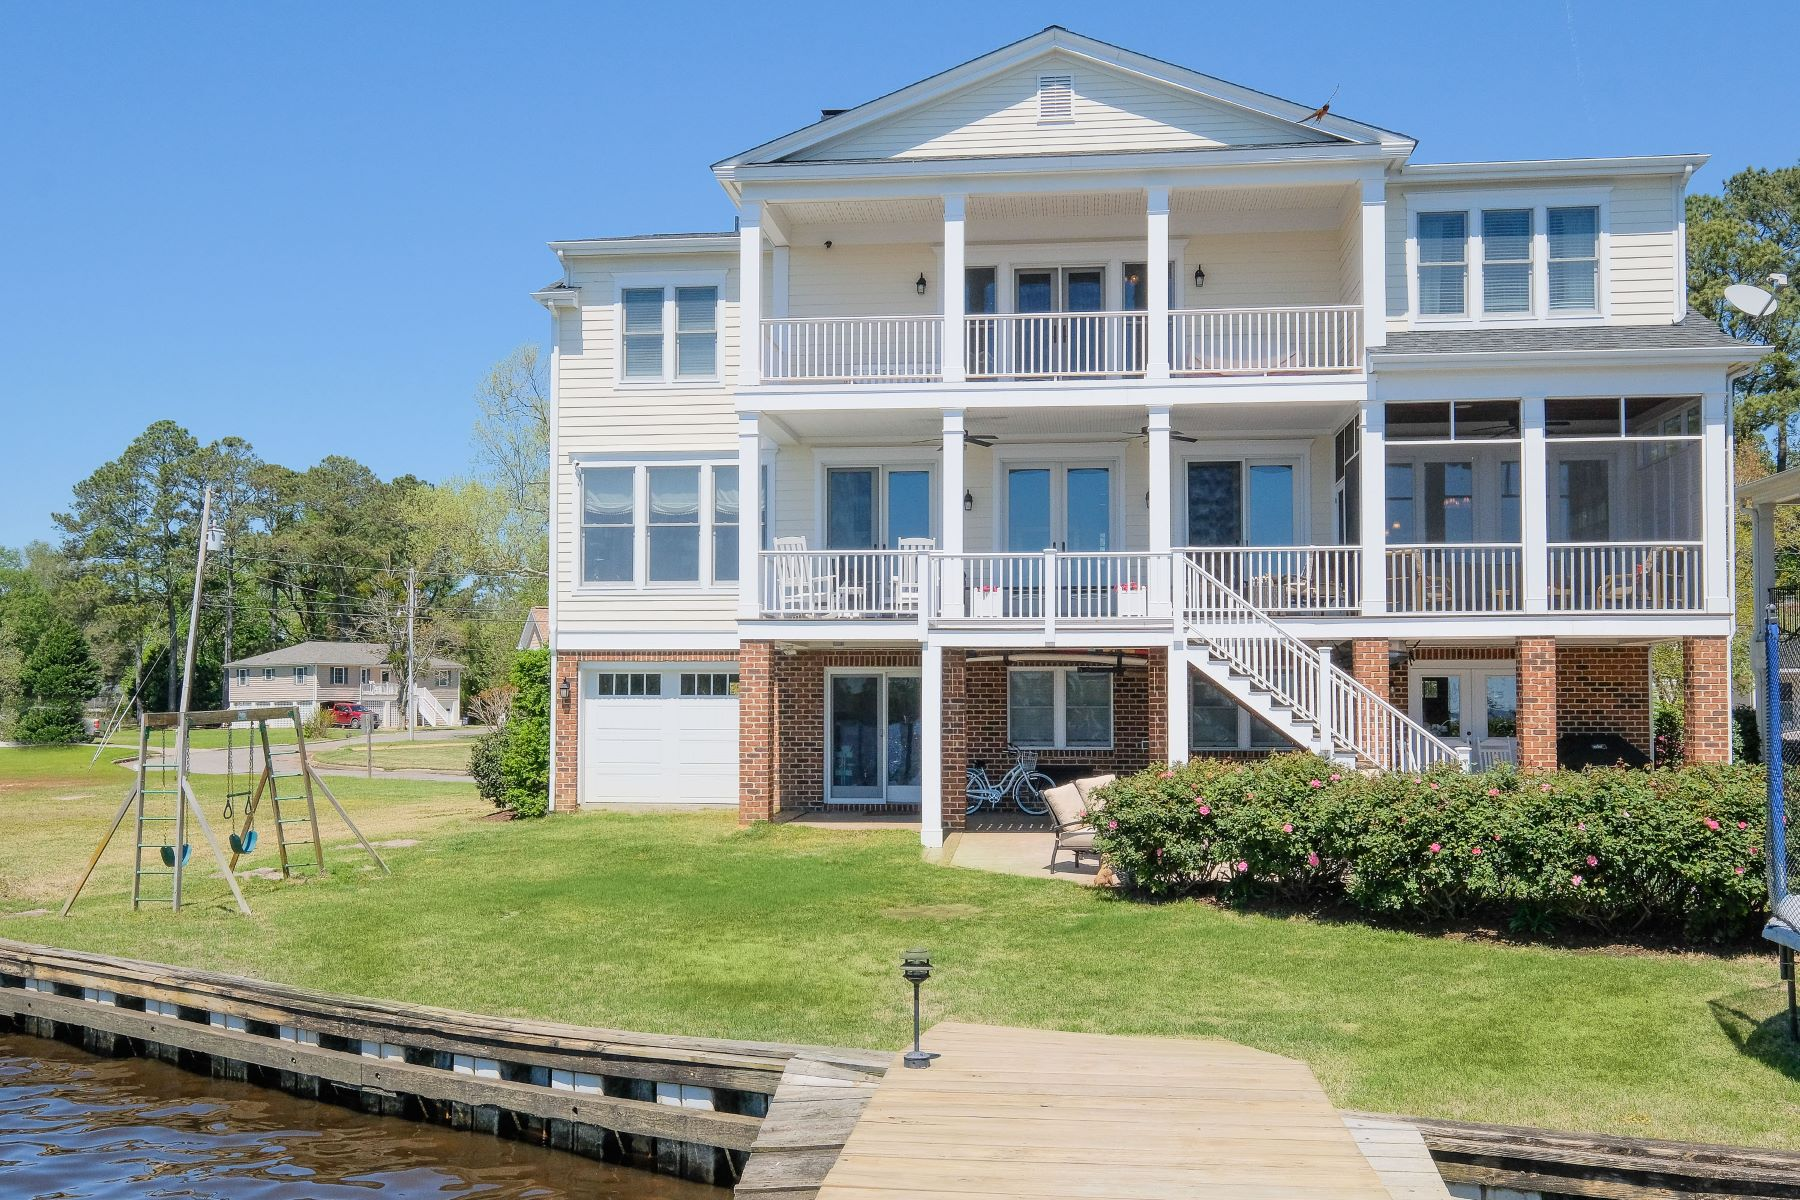 Single Family Homes for Sale at NEW CUSTOM HOME, DOWNTOWN WATERFRONT 107 Pembroke Circle Edenton, North Carolina 27932 United States